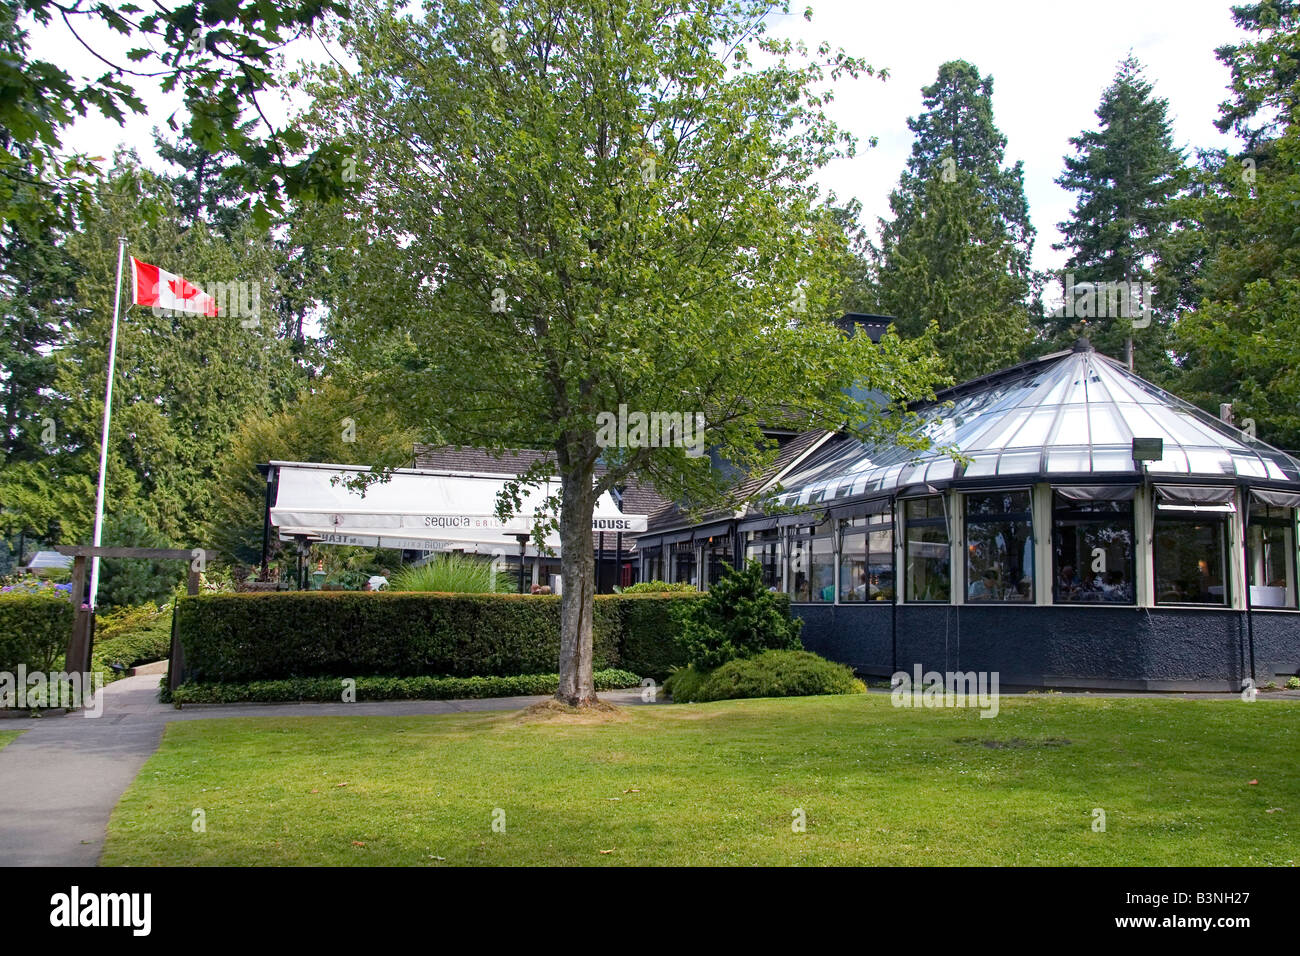 Sequoia Grill At The Teahouse In Stanley Park At Vancouver British Stock Photo Royalty Free